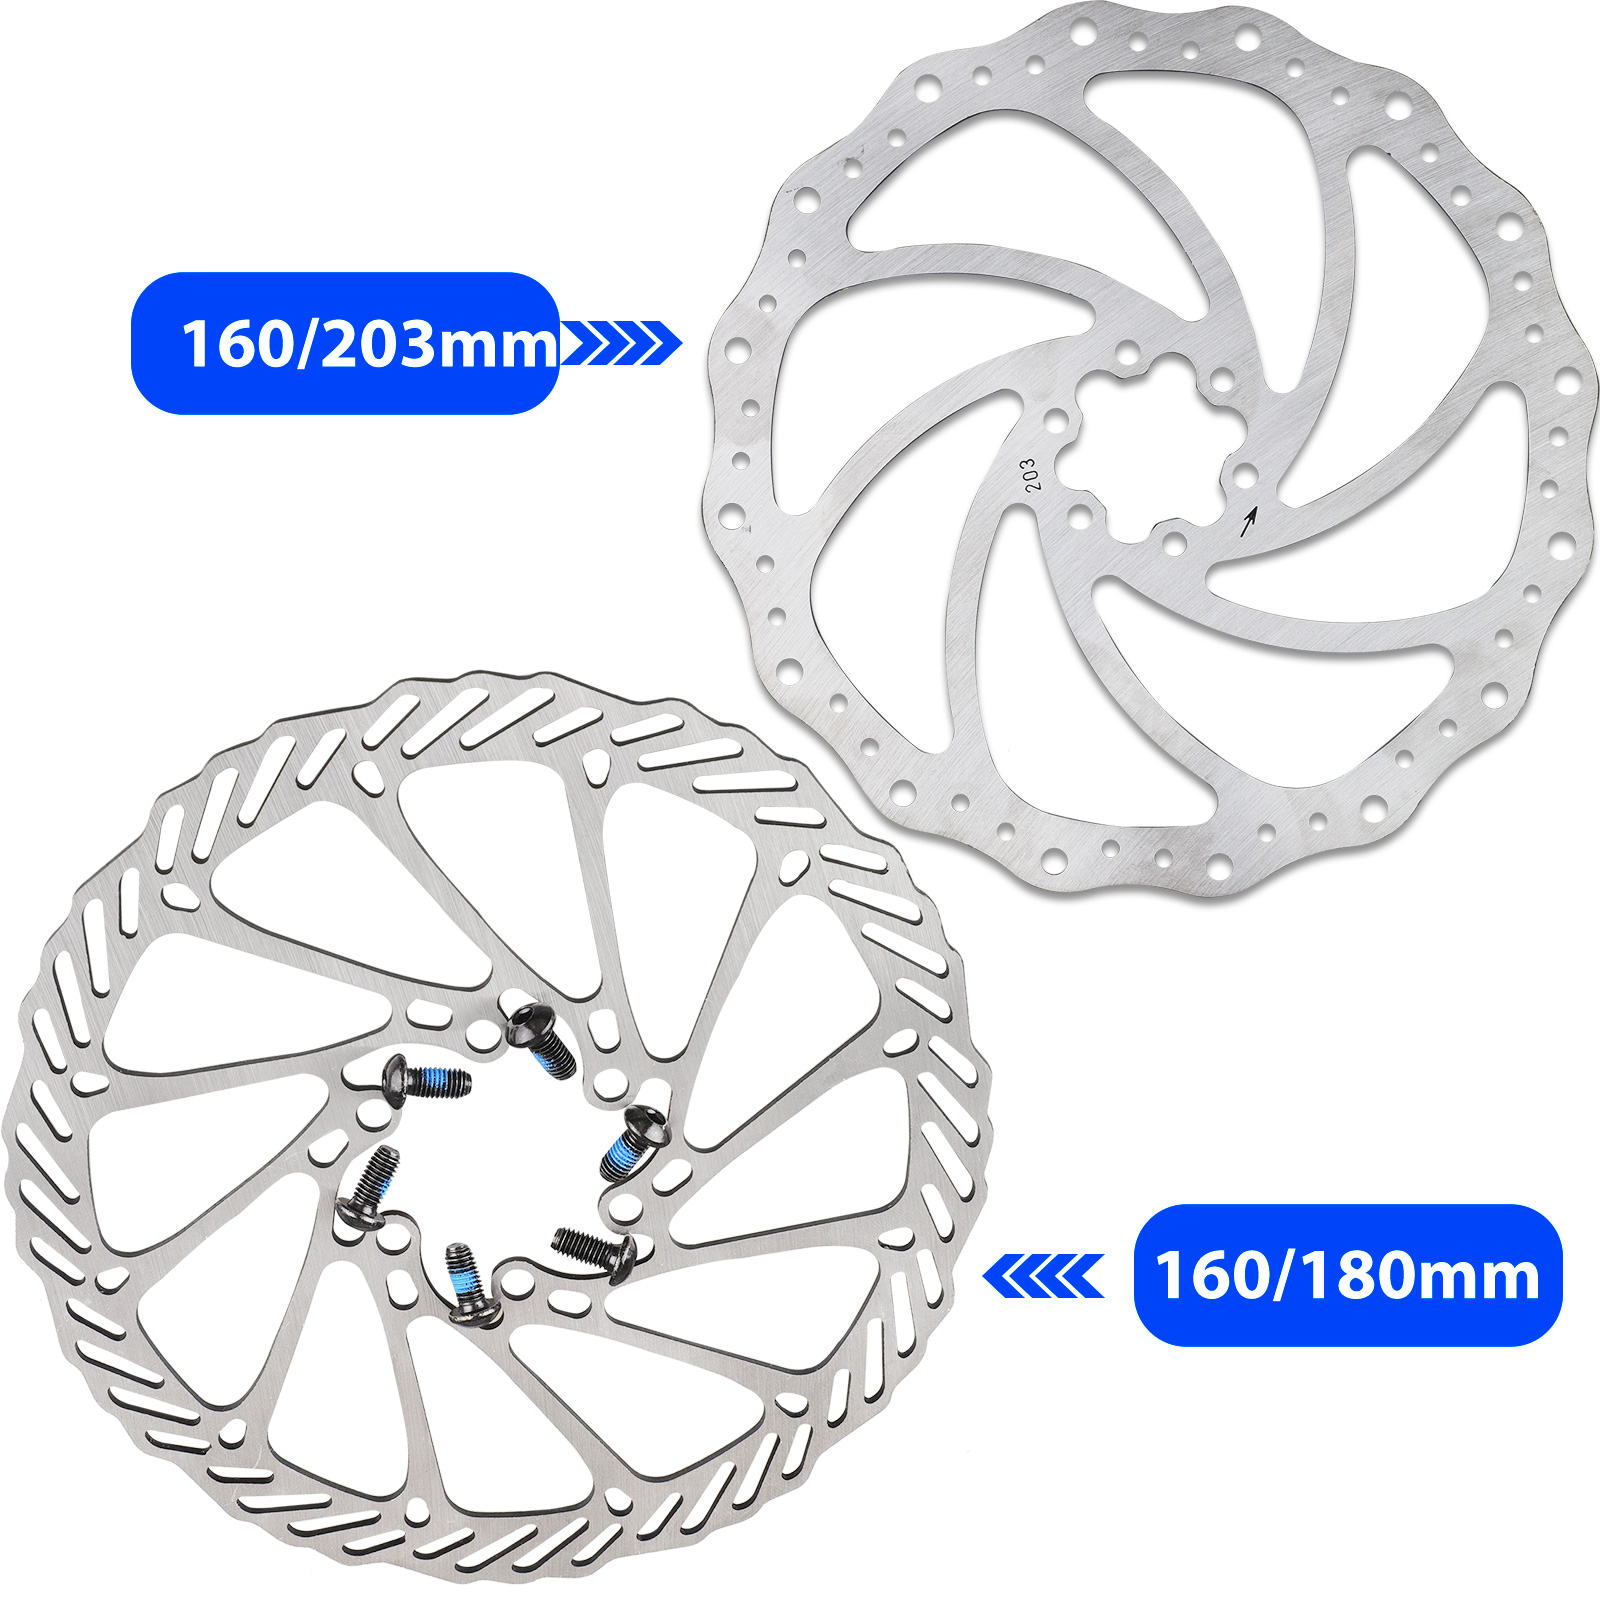 180mm Stainless Steel Bicycle Mountain Bike MTB Brake Disc Rotor 6 Bolts For G3